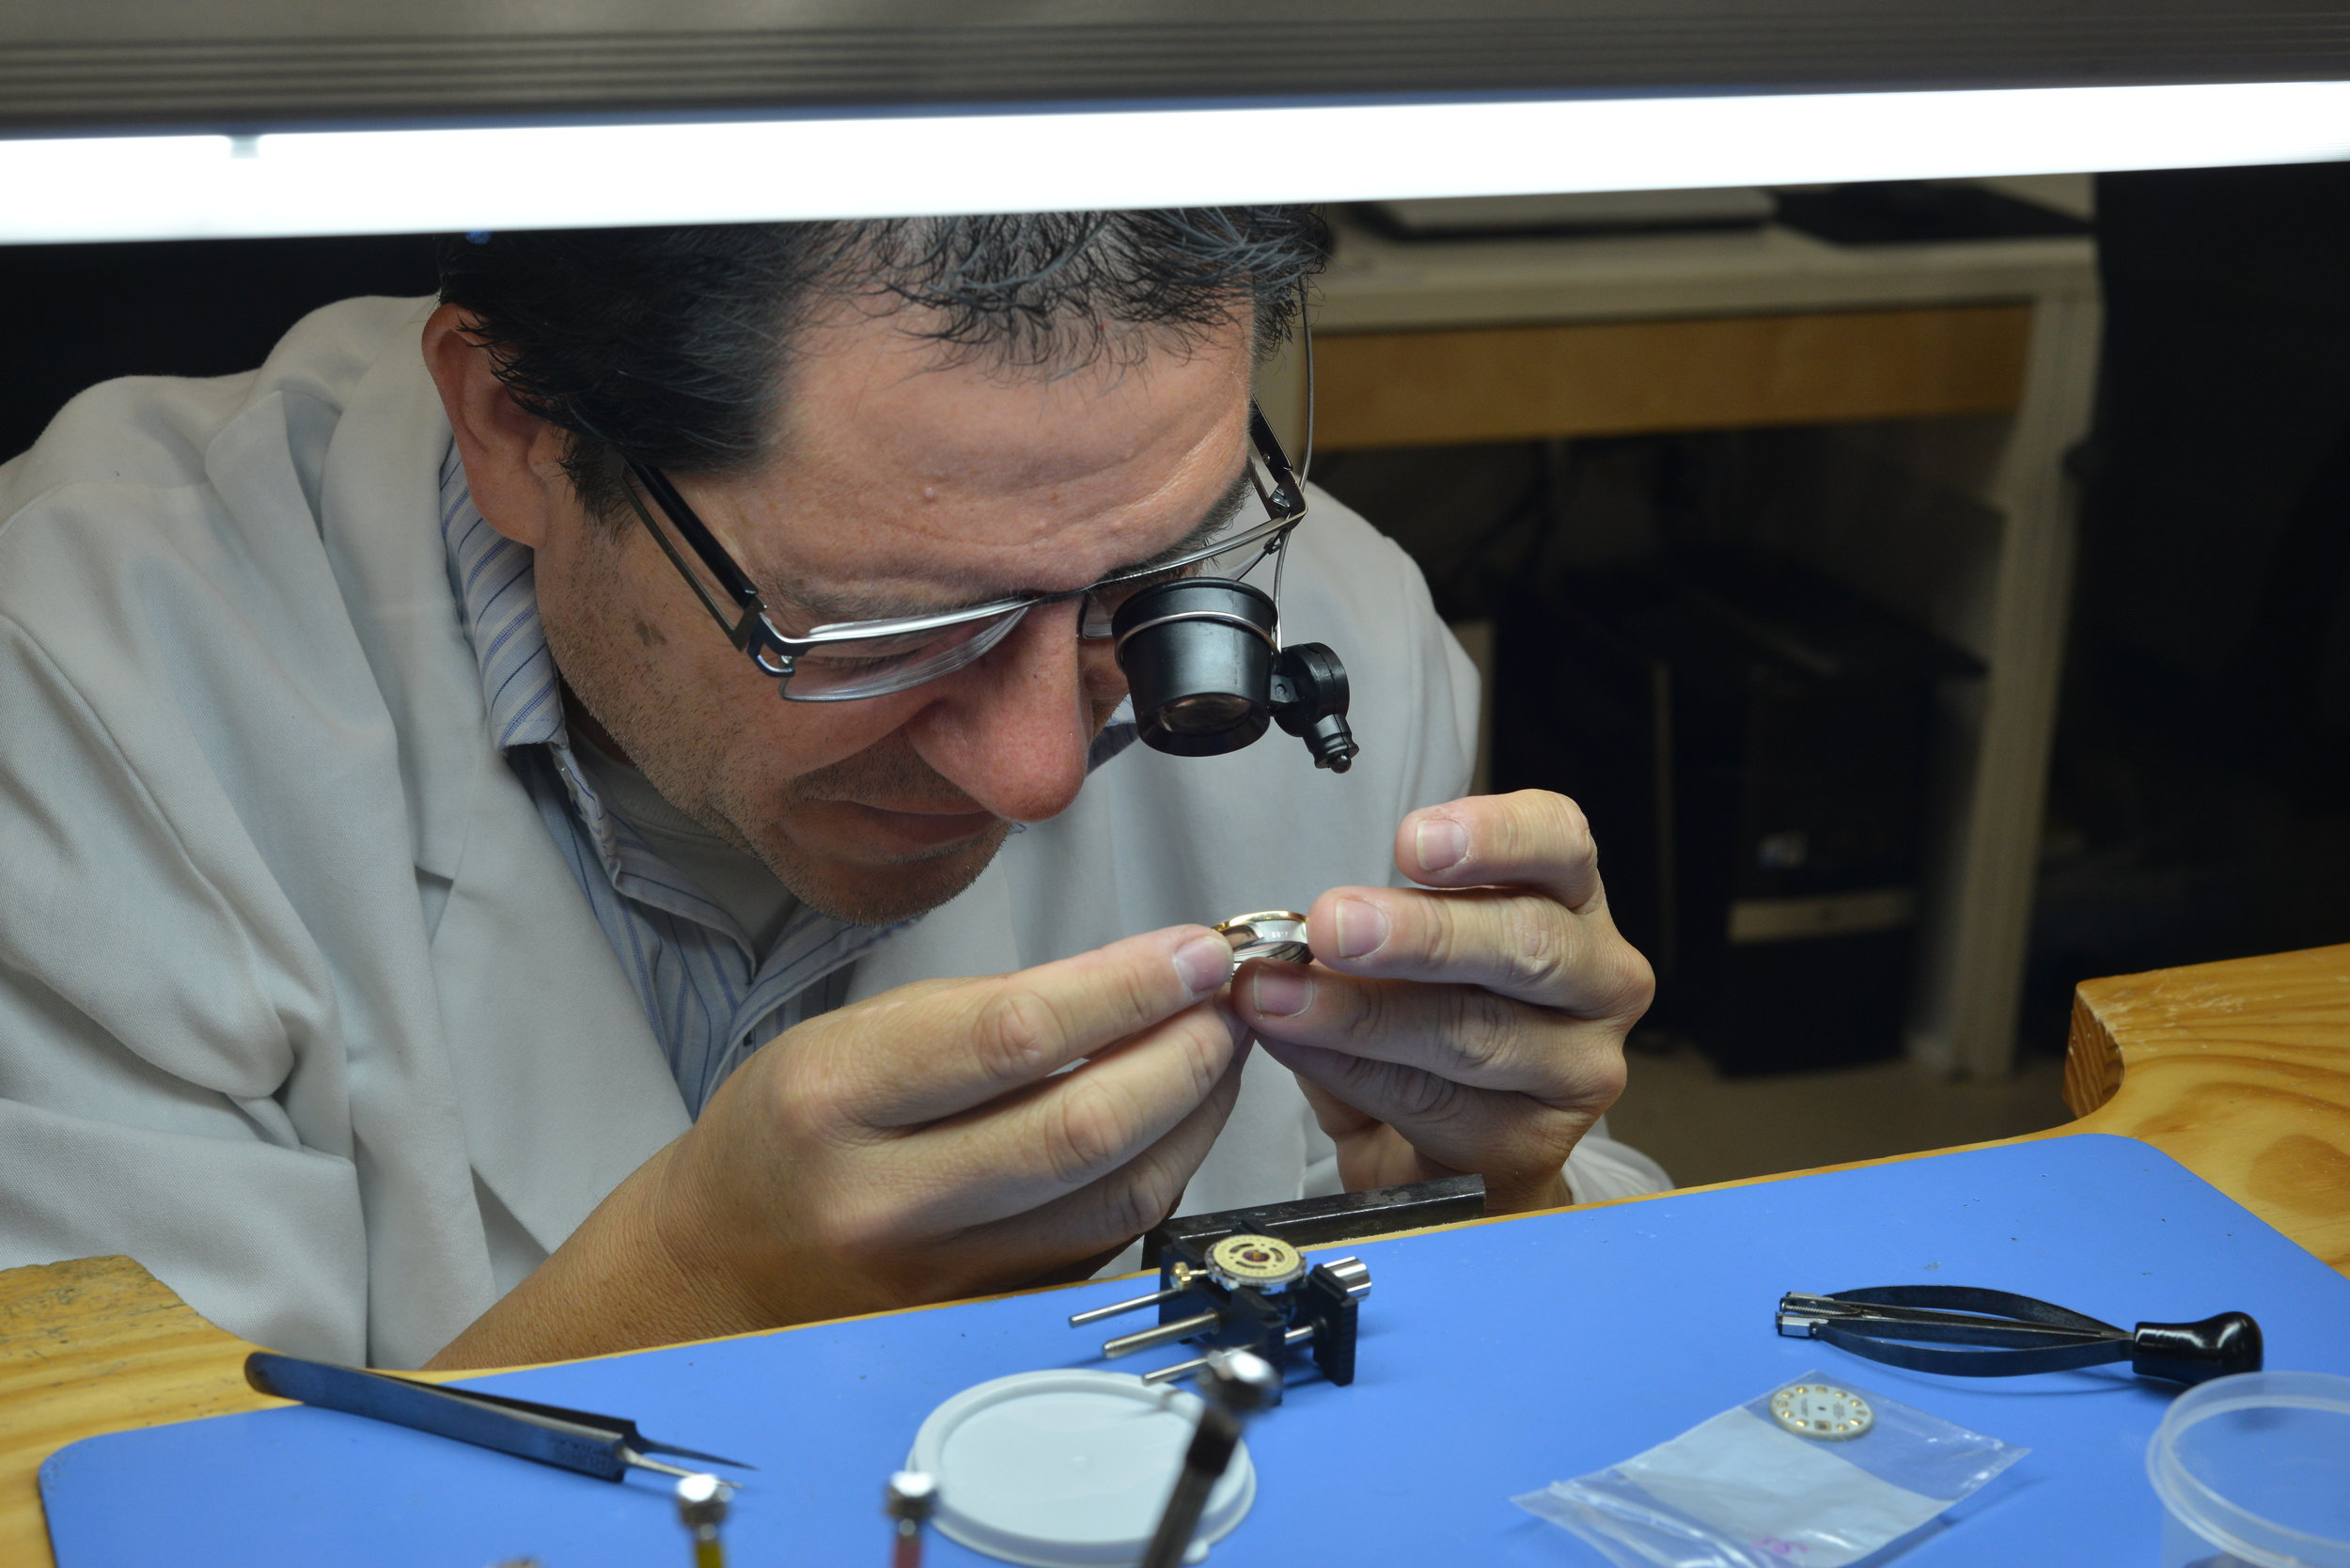 At Turley Jewelers we examine every previously owned watch carefully to check for original parts and functionality.